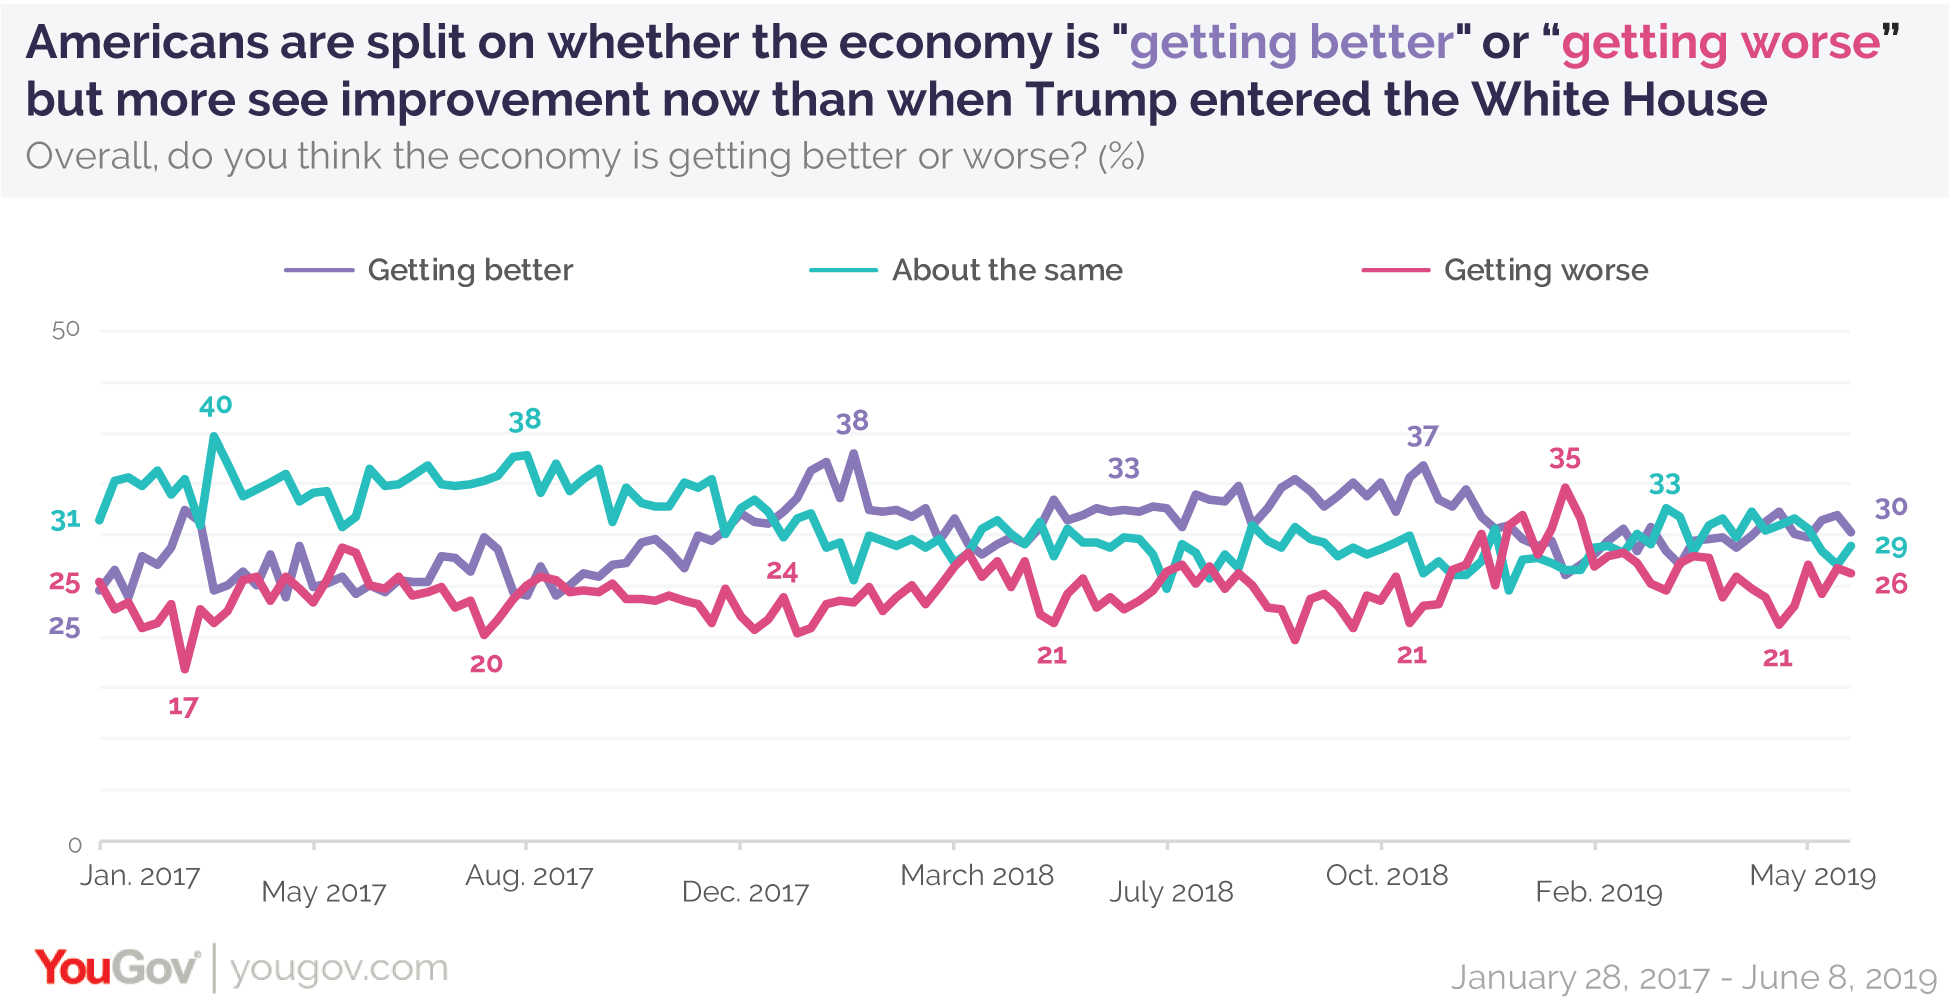 Americans are split on whether the economy is getting better or worse, but more see improvement now than when Trump began his term as president